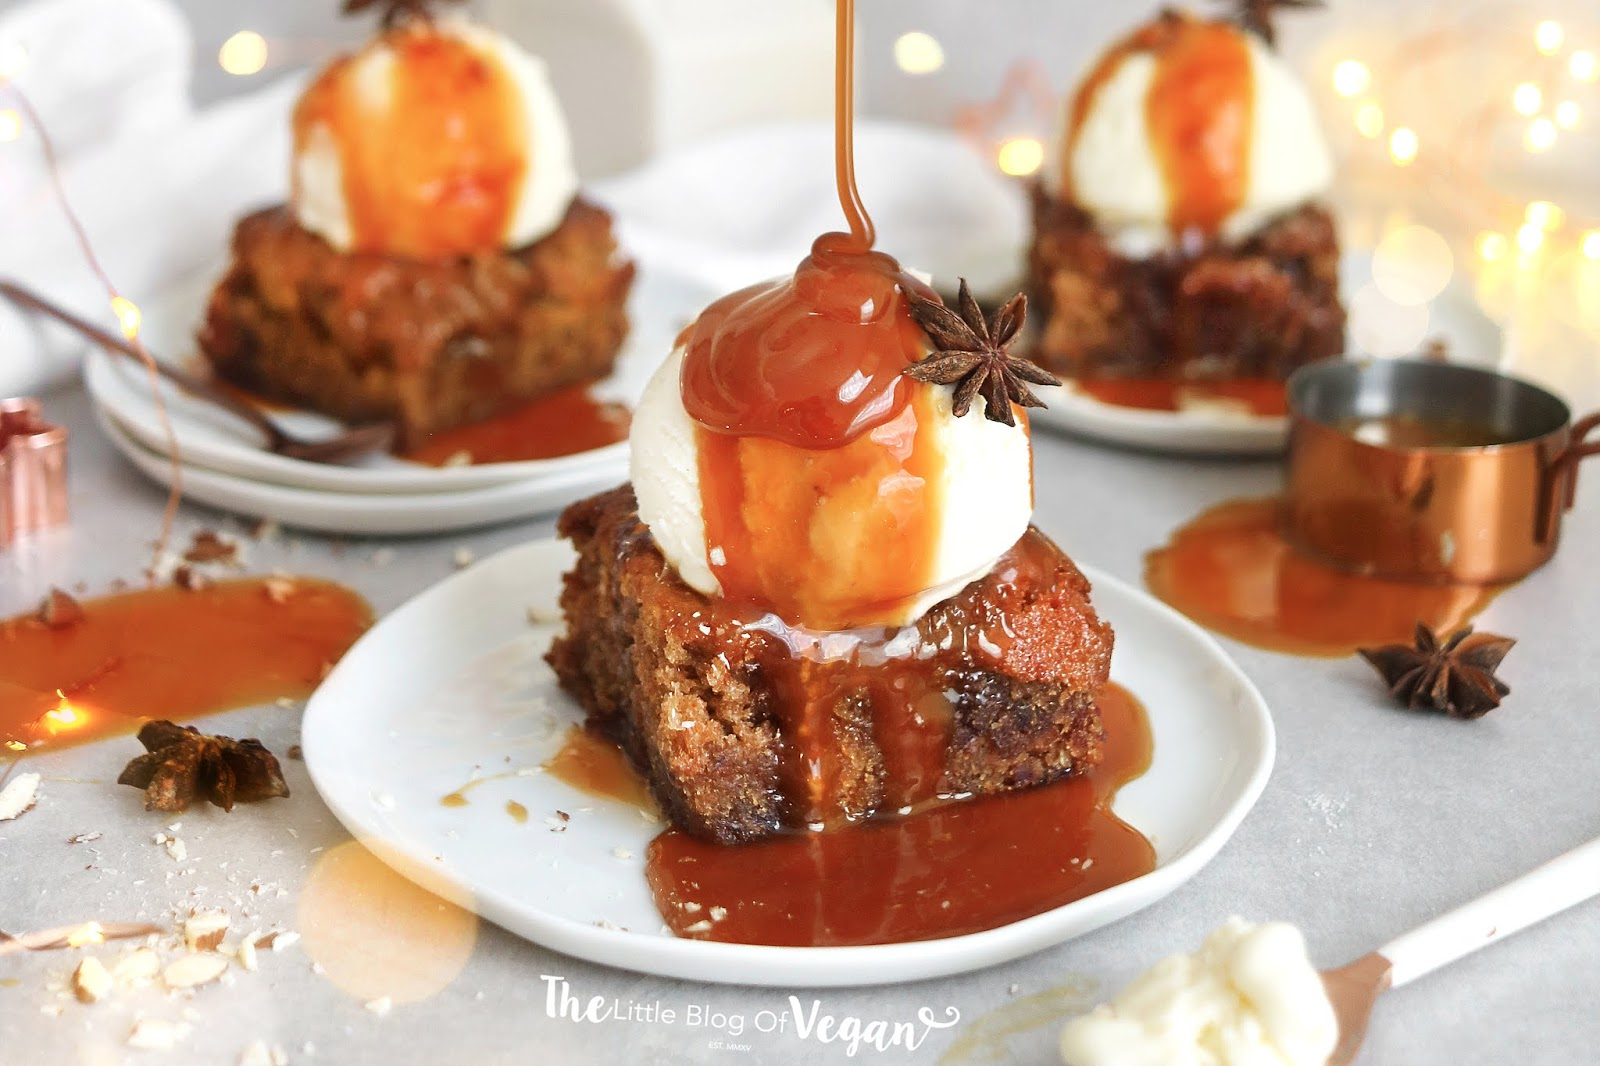 The best vegan sticky toffee pudding recipe